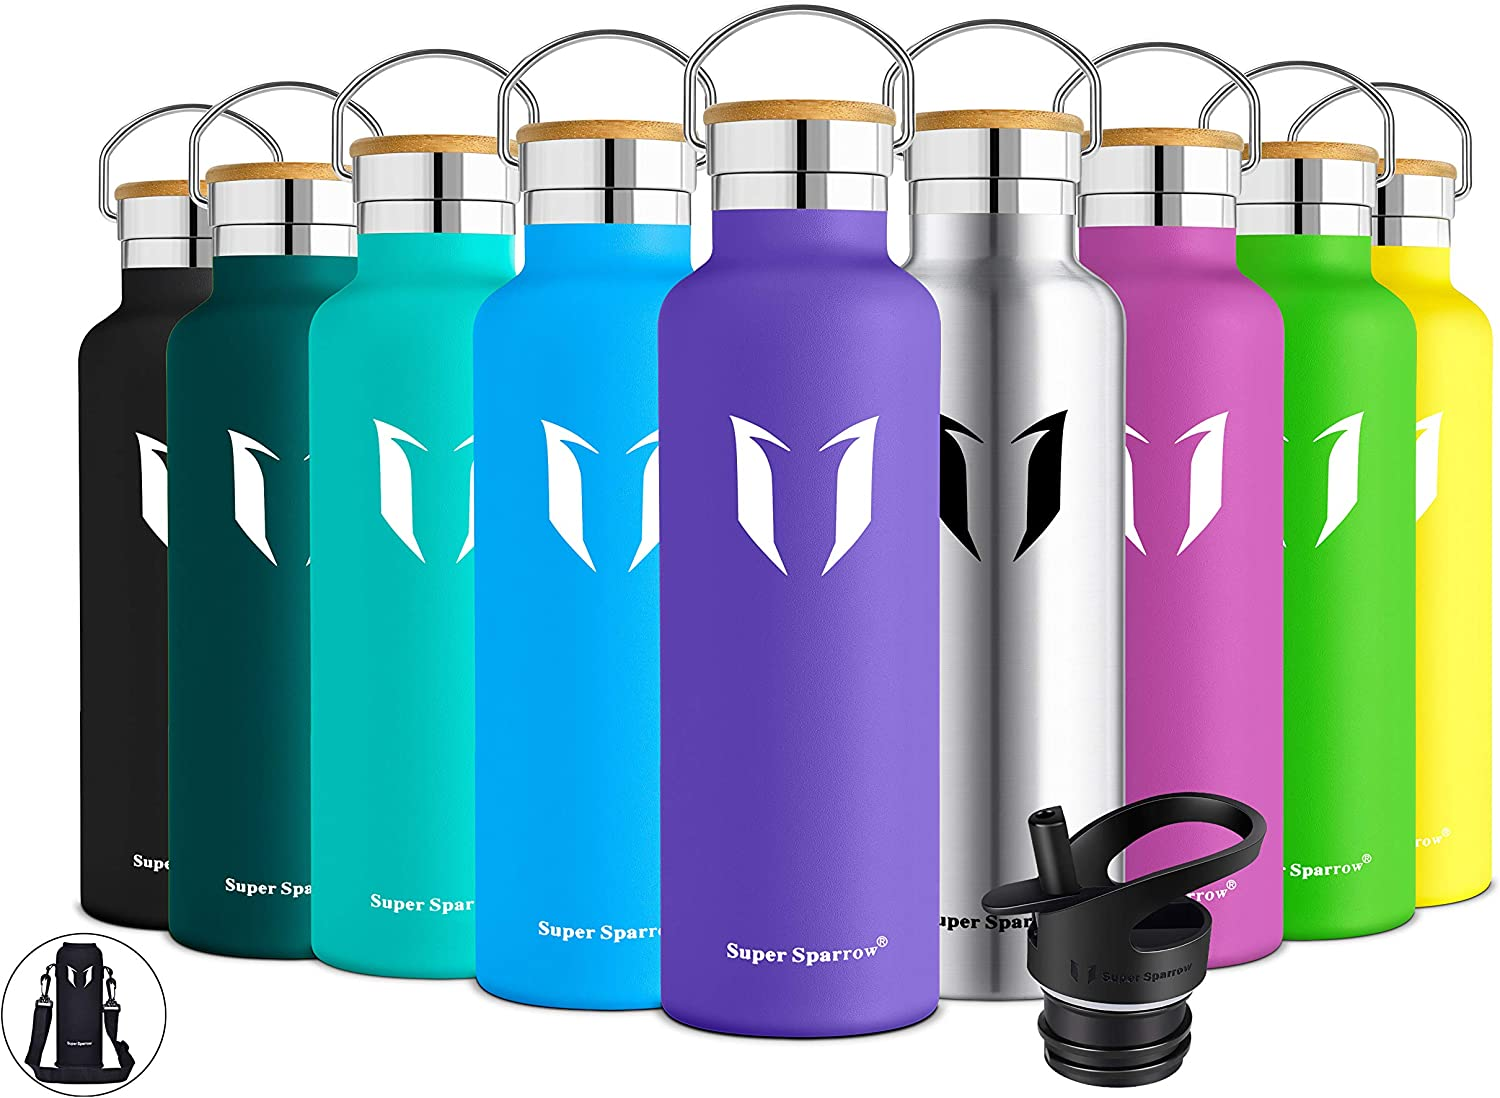 Super Sparrow Stainless Steel Vacuum Insulated Water Bottle, Double Wall Design,Standard Mouth - 500ml & 750ml - BPA Free - with 2 Exchangeable Caps + Bottle Pouch (Lavender, 750ml-25oz)